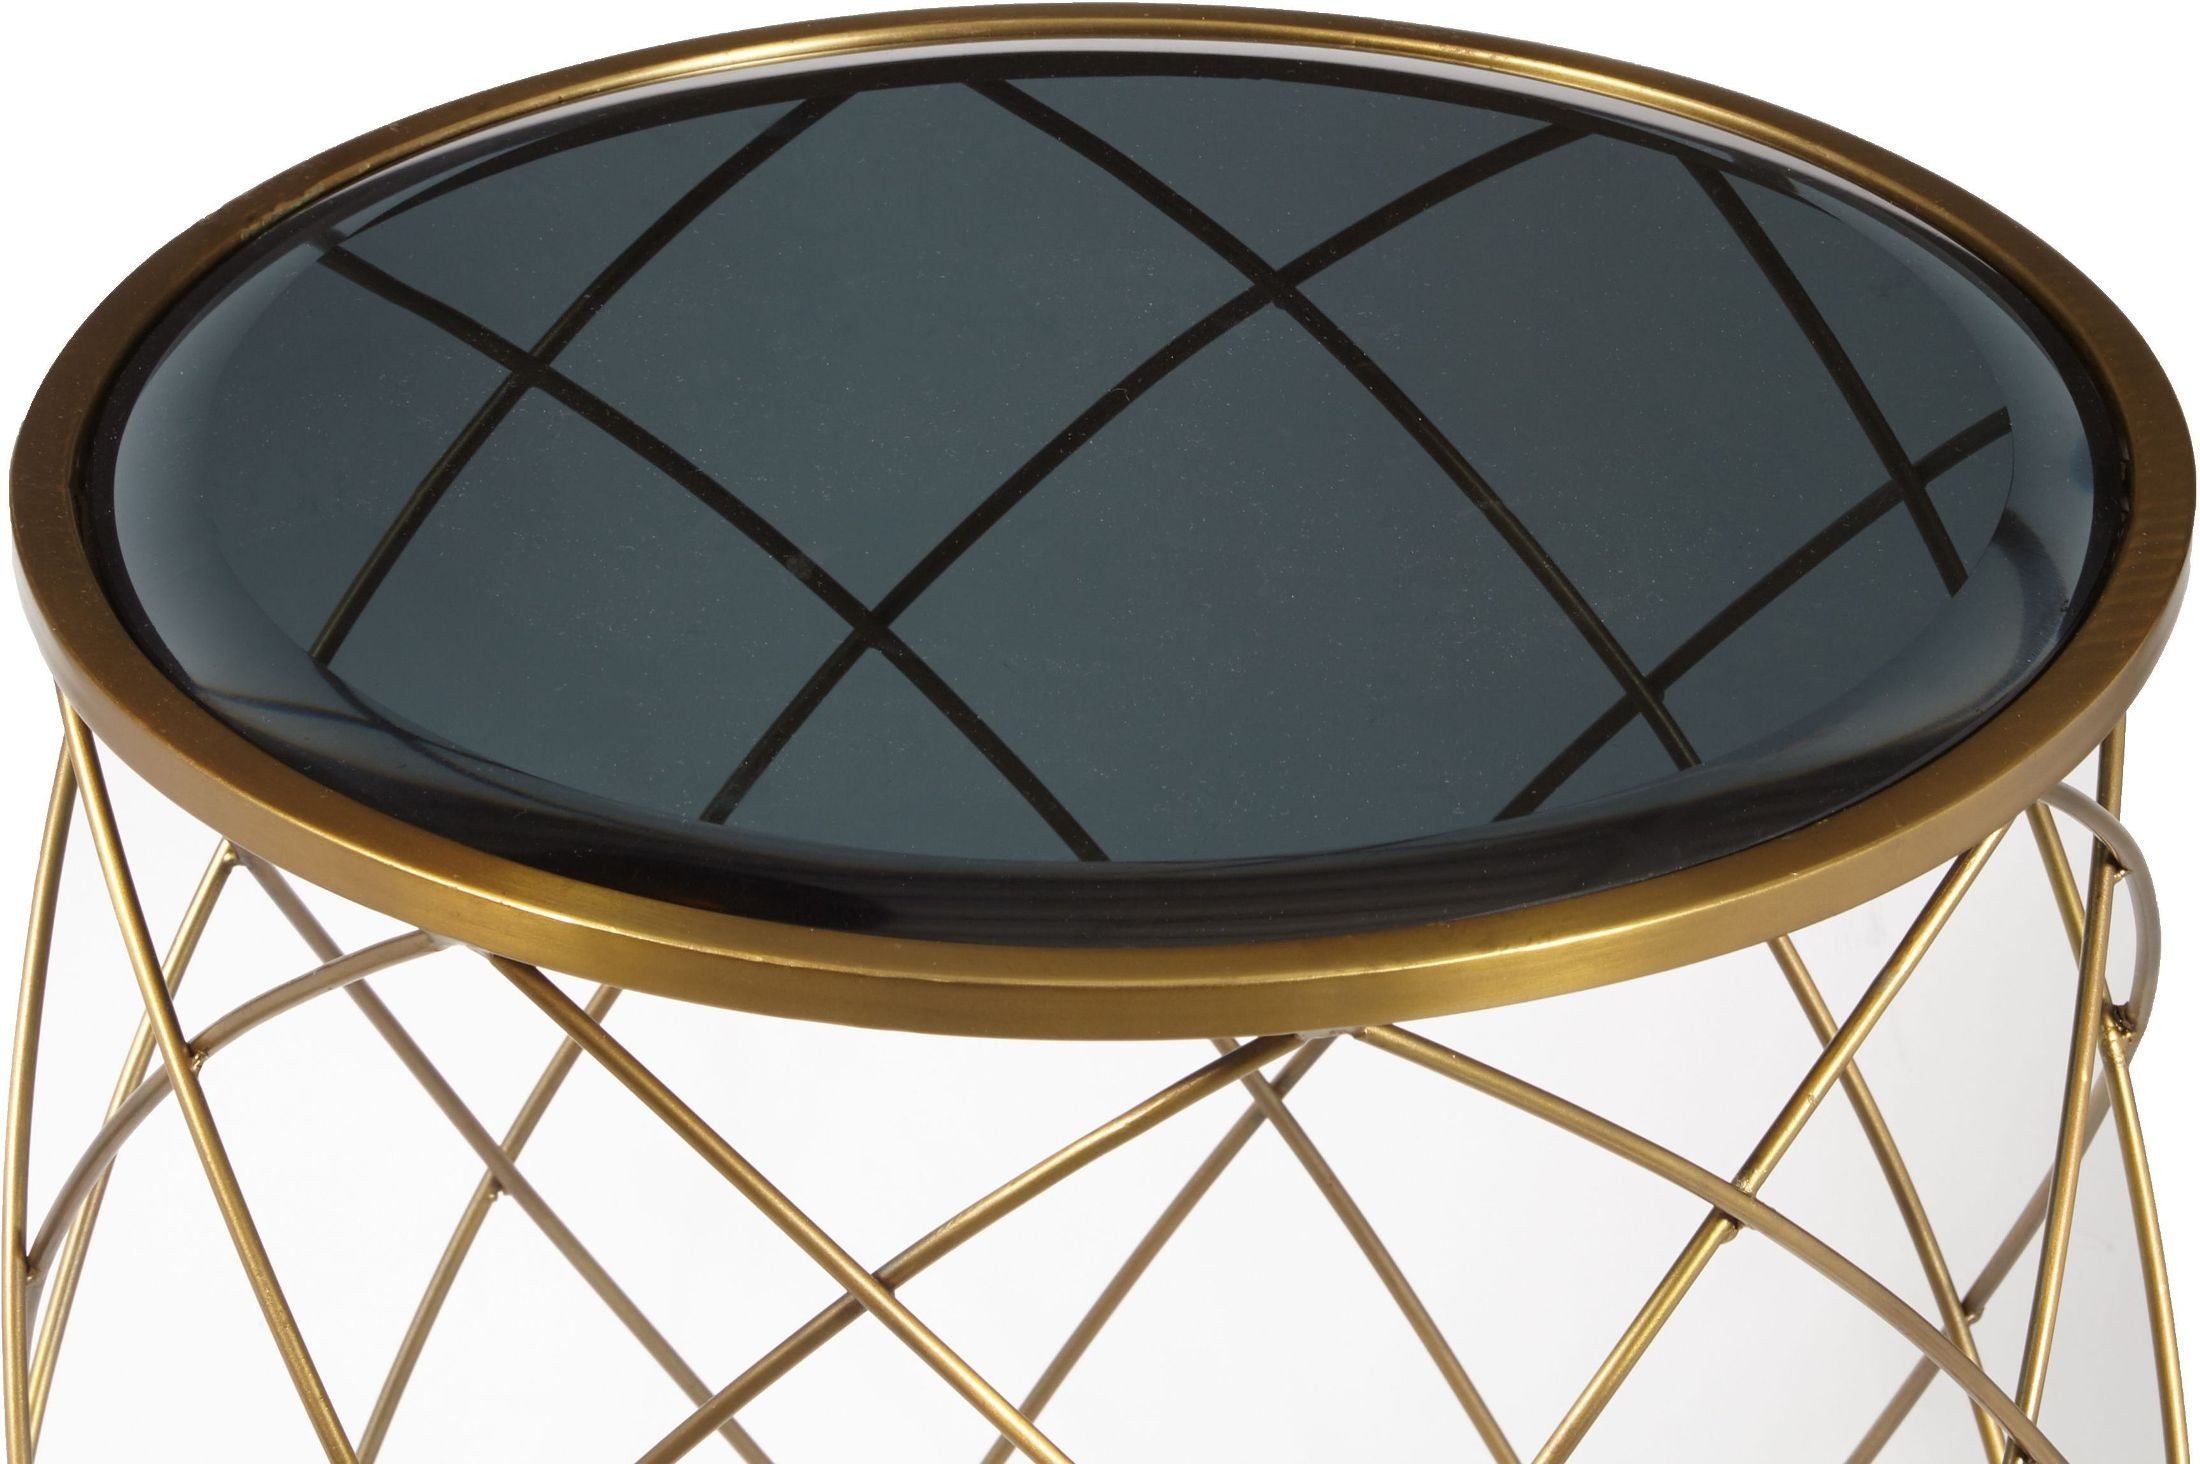 convex round brass metal smoked glass top accent table pulaski media gallery navy blue lamp shade parsons coffee outdoor lounge chairs small end lamps tiffany oak nest tables